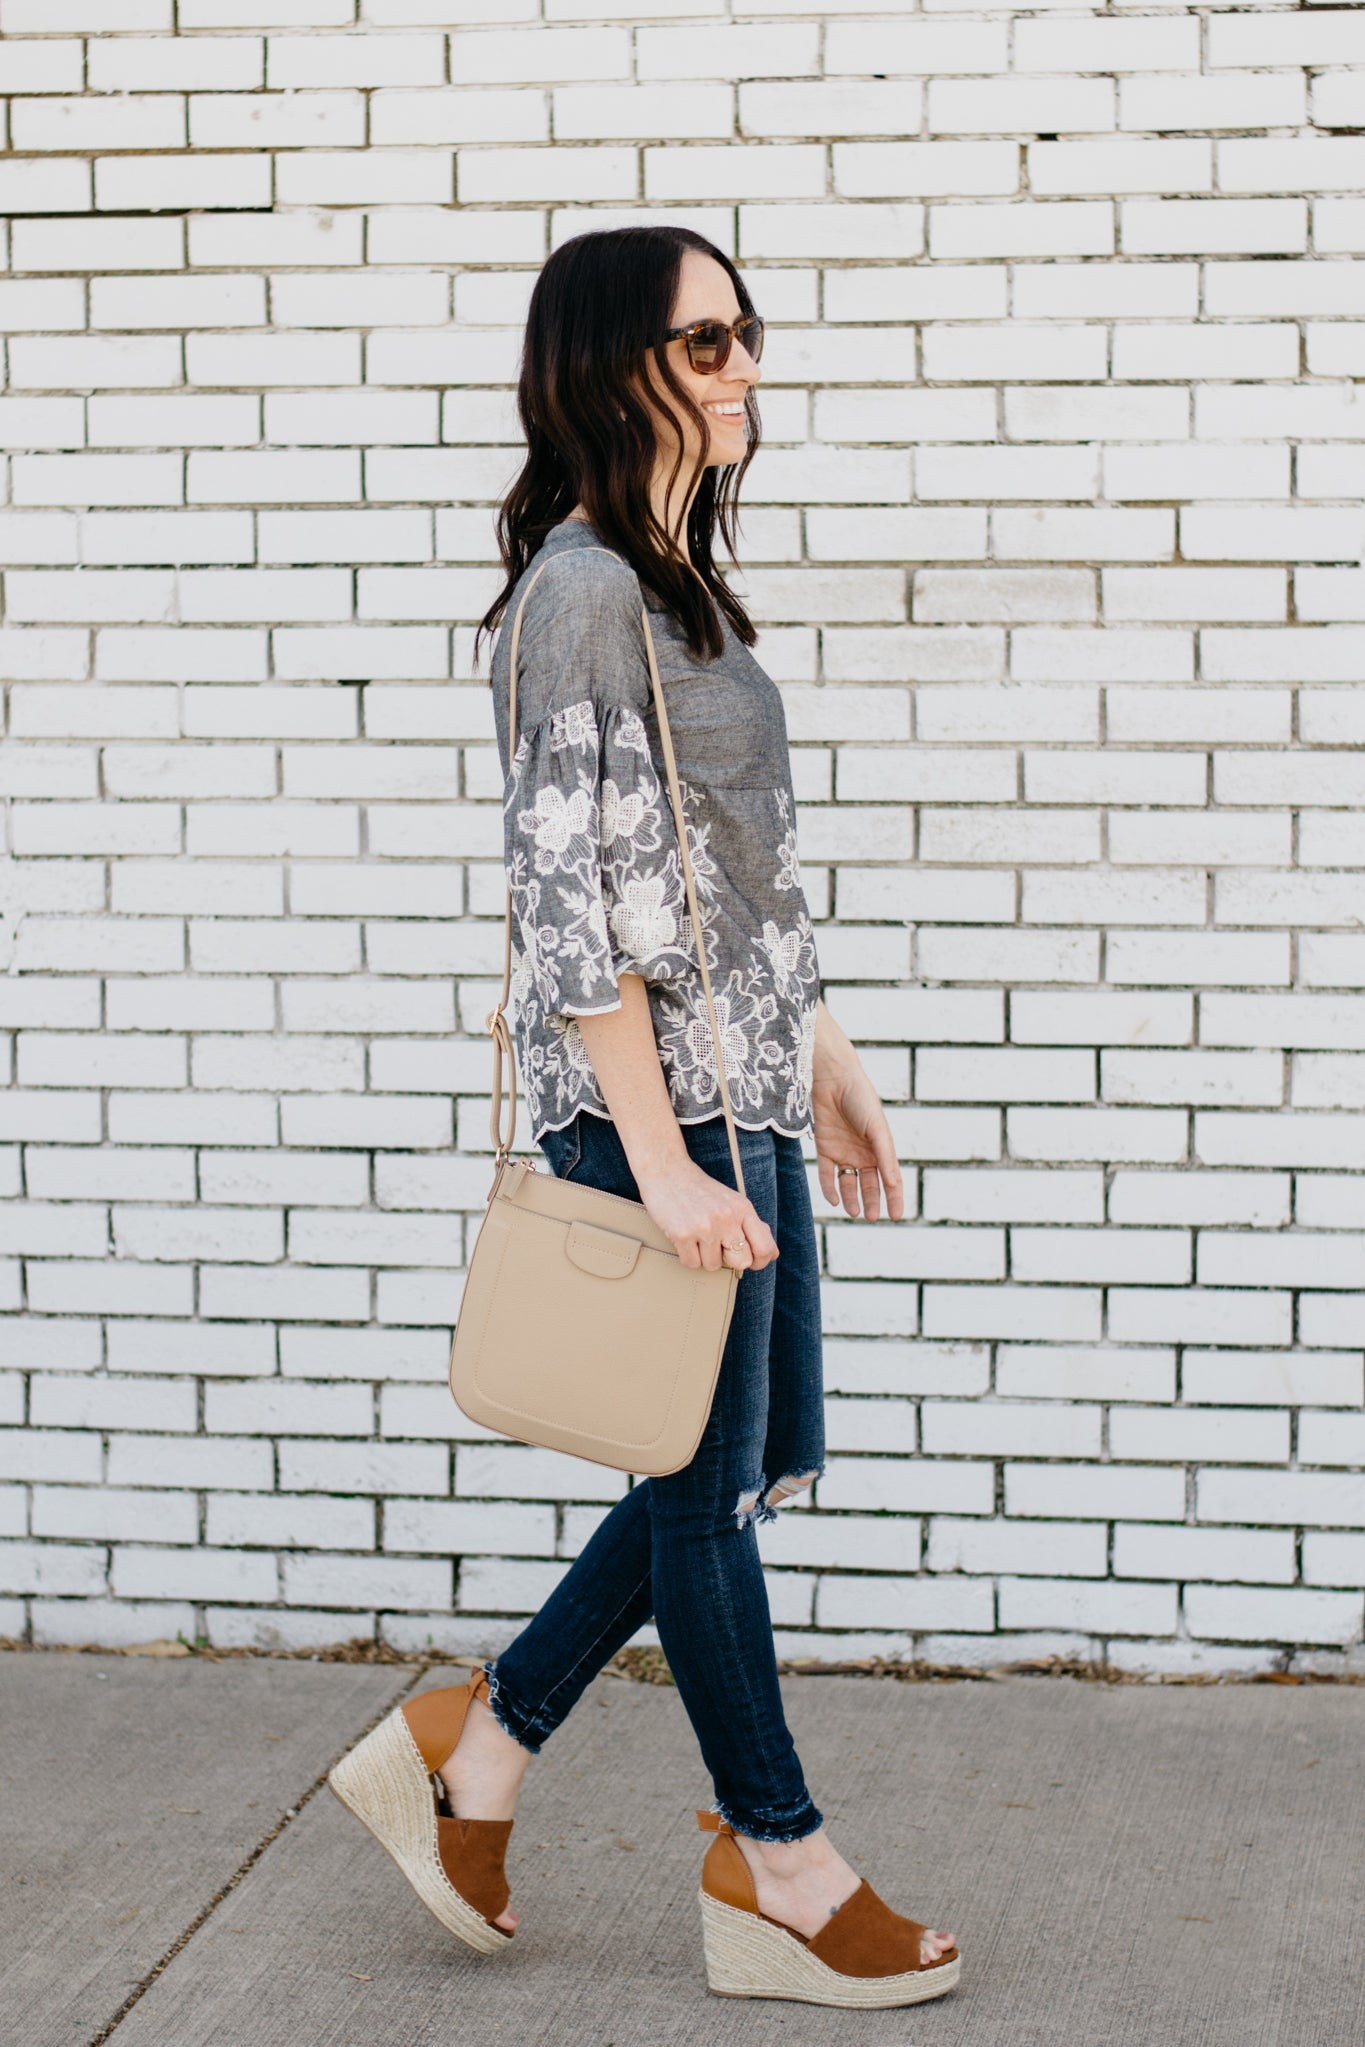 Gray Blouse with White Floral Embroidery